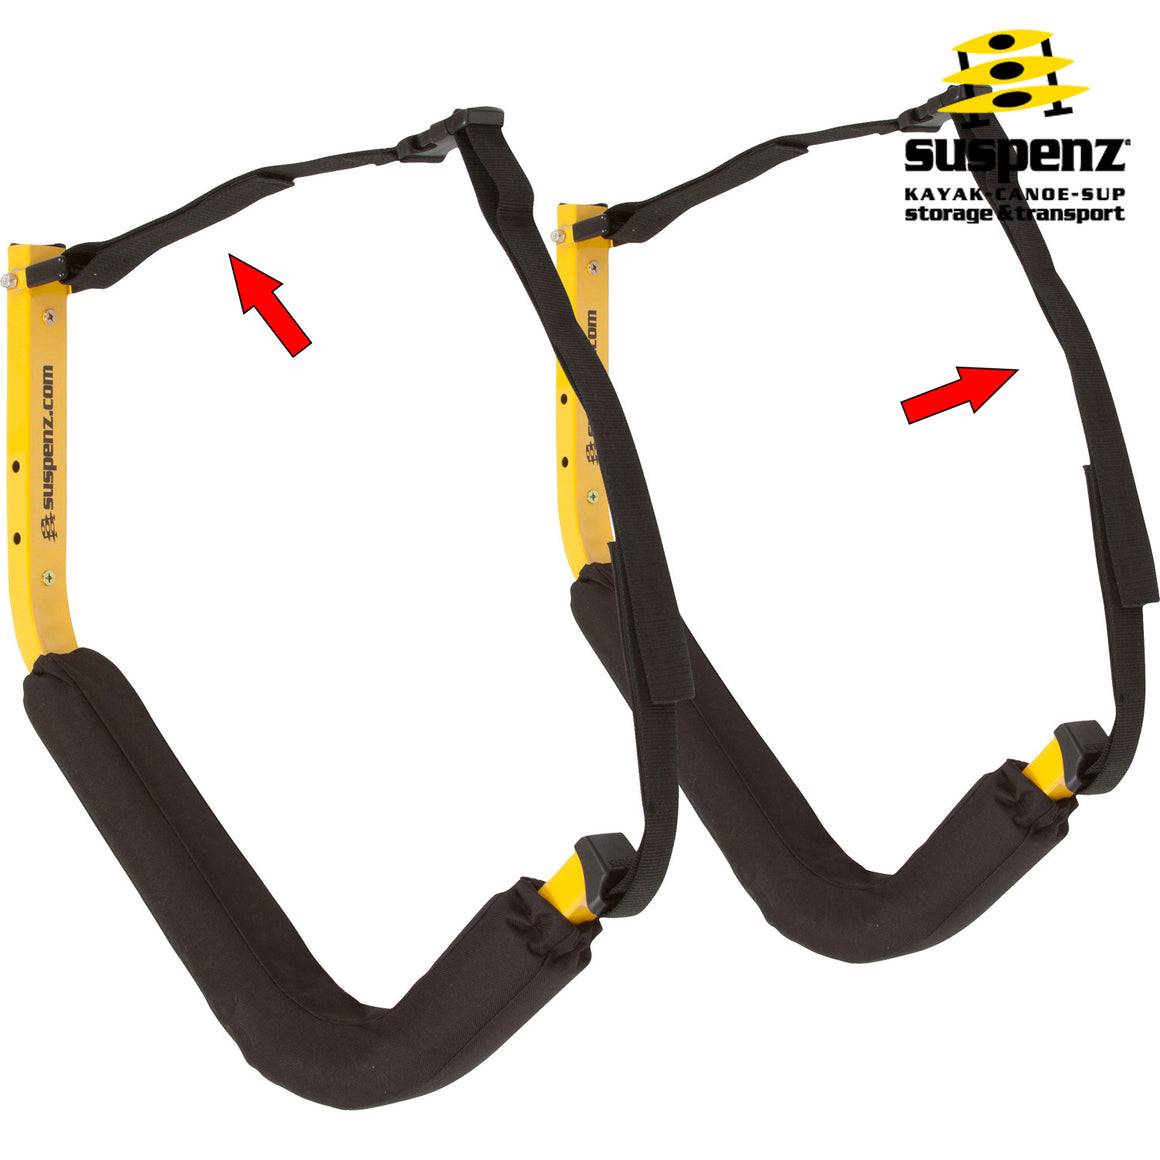 EZ Rack Replacement Straps